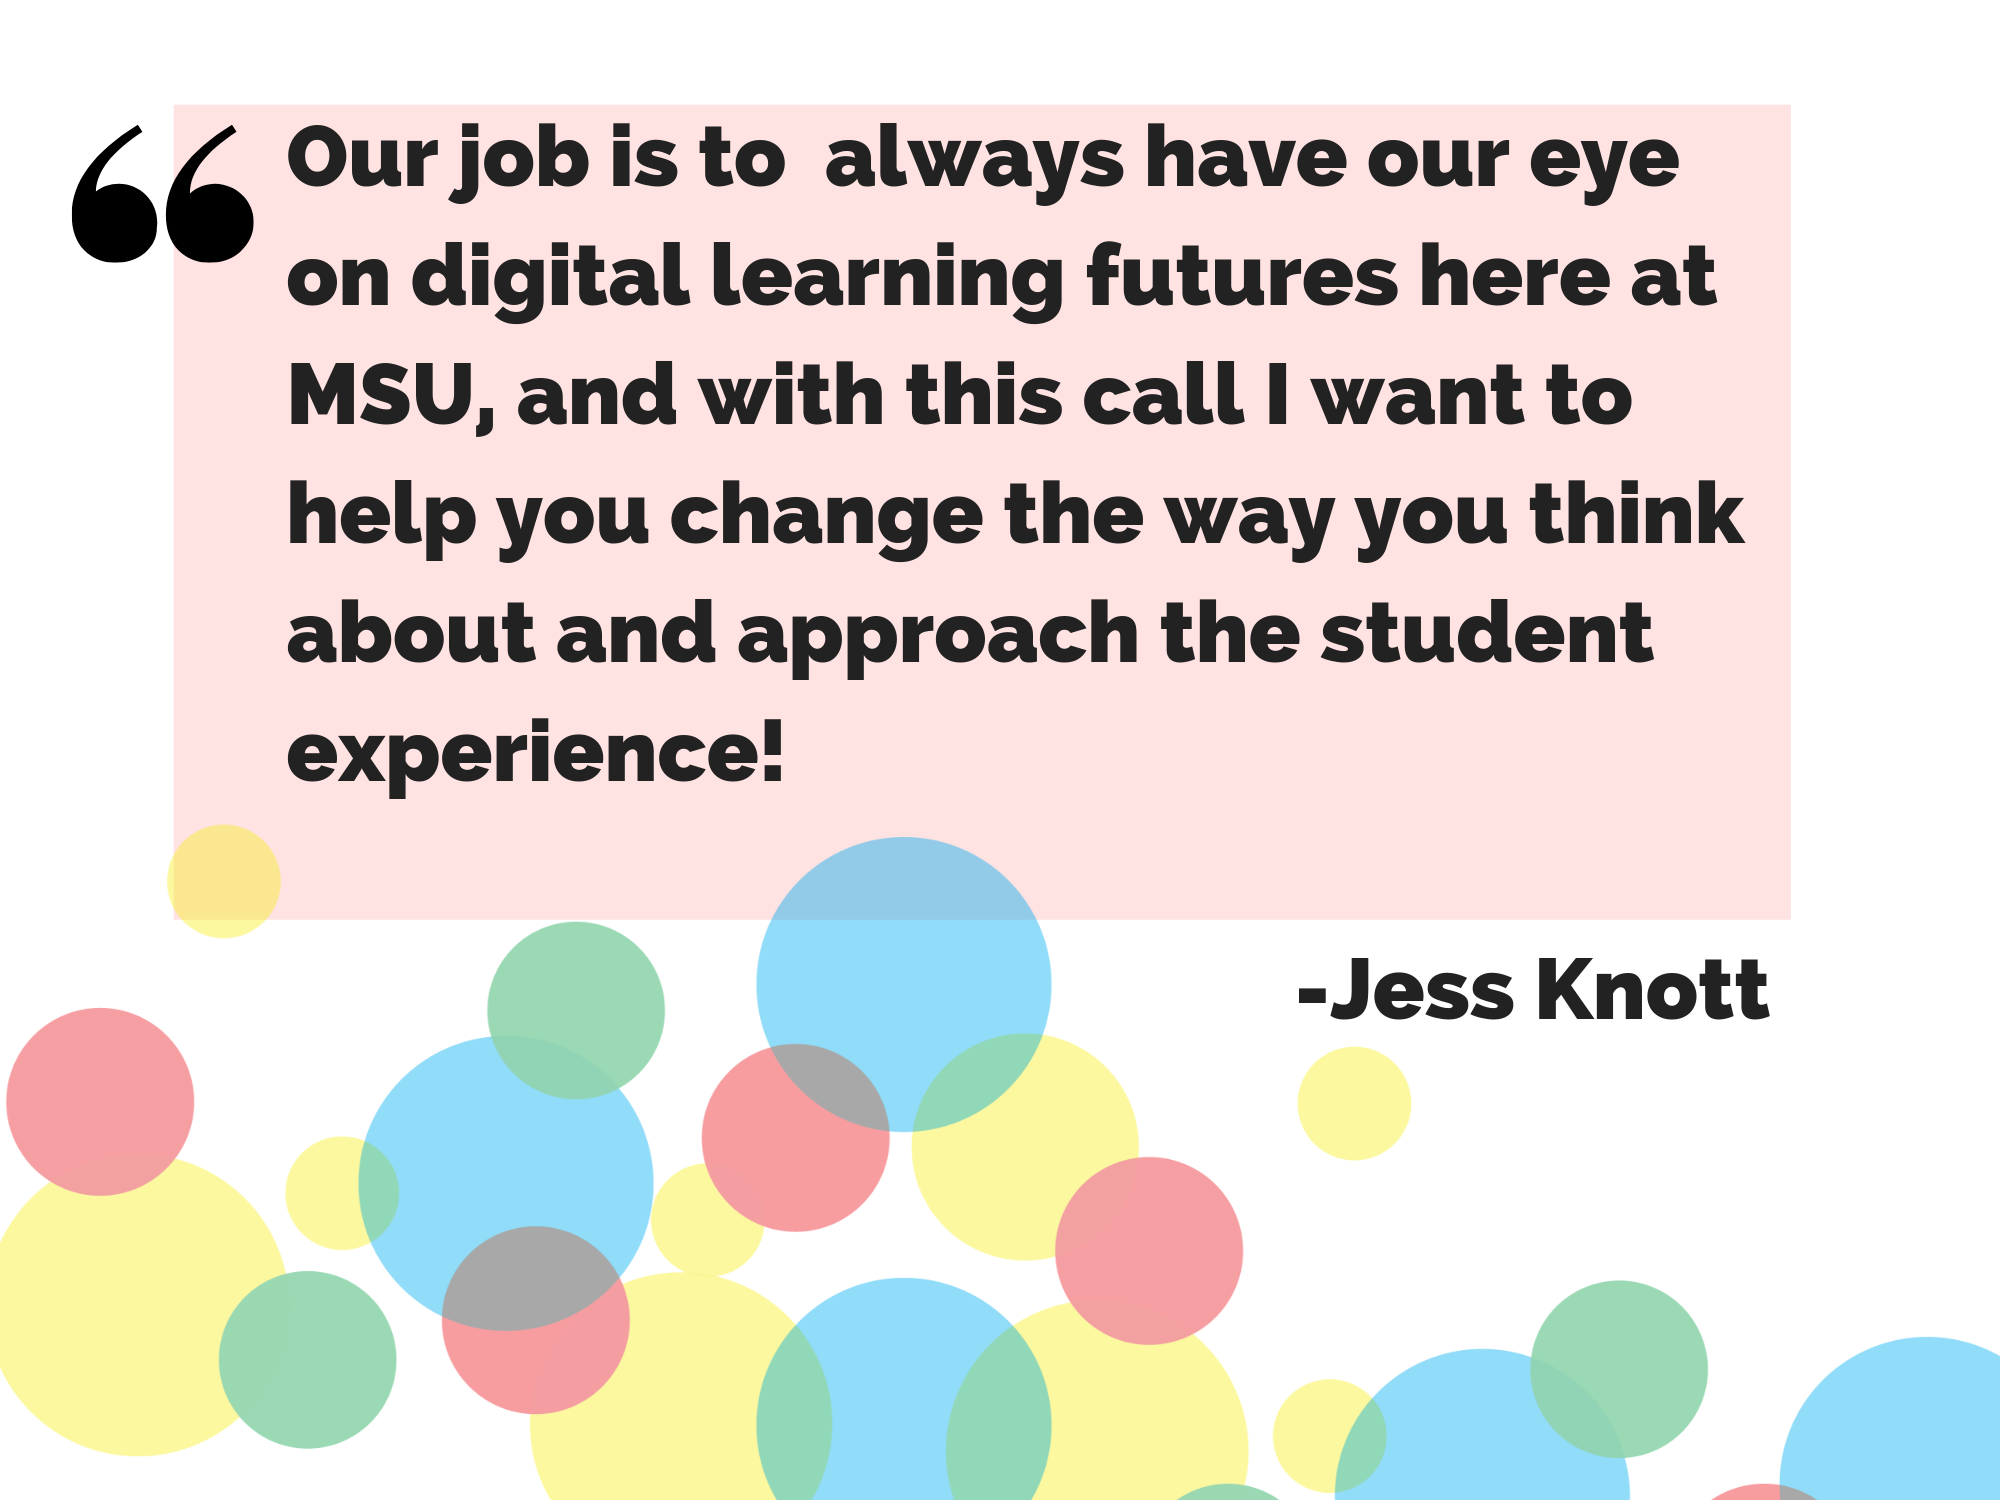 Our job is to  always have our eye on digital learning futures here at MSU, and with this call I want to help you change the way you think about and approach the student experience! - Jess Knott